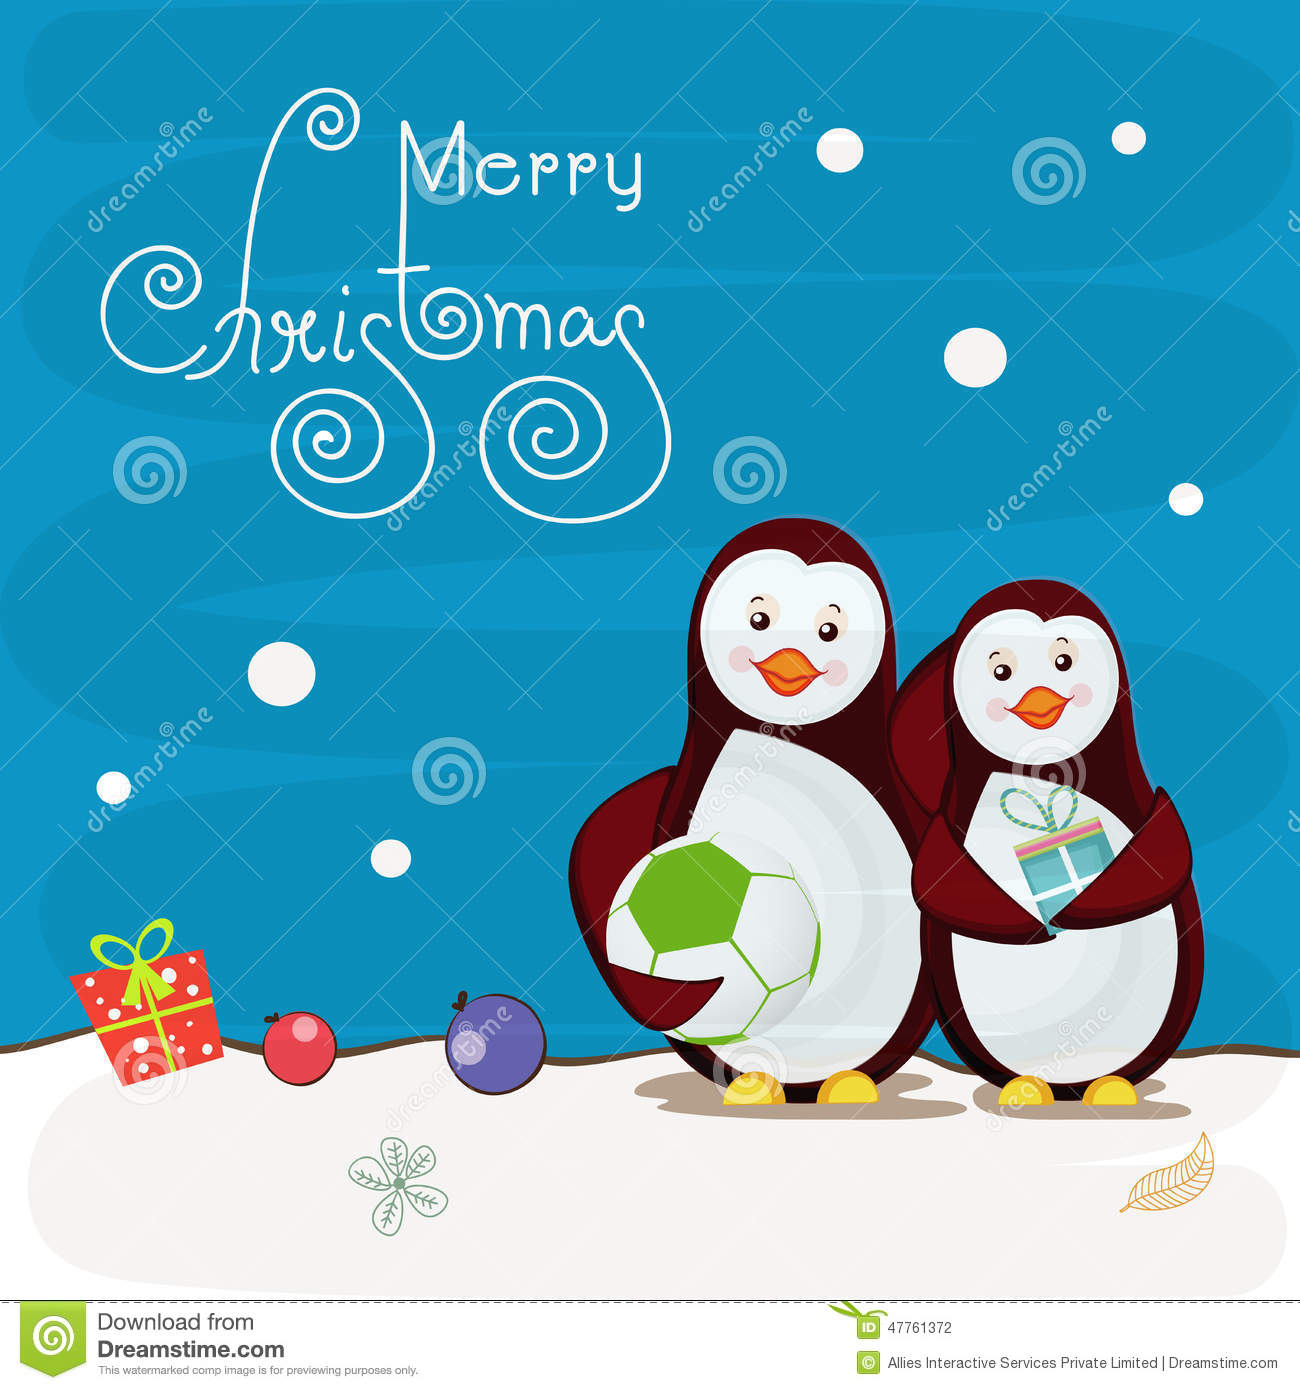 Greeting card design for merry christmas celebrations stock greeting card design for merry christmas celebrations kristyandbryce Image collections